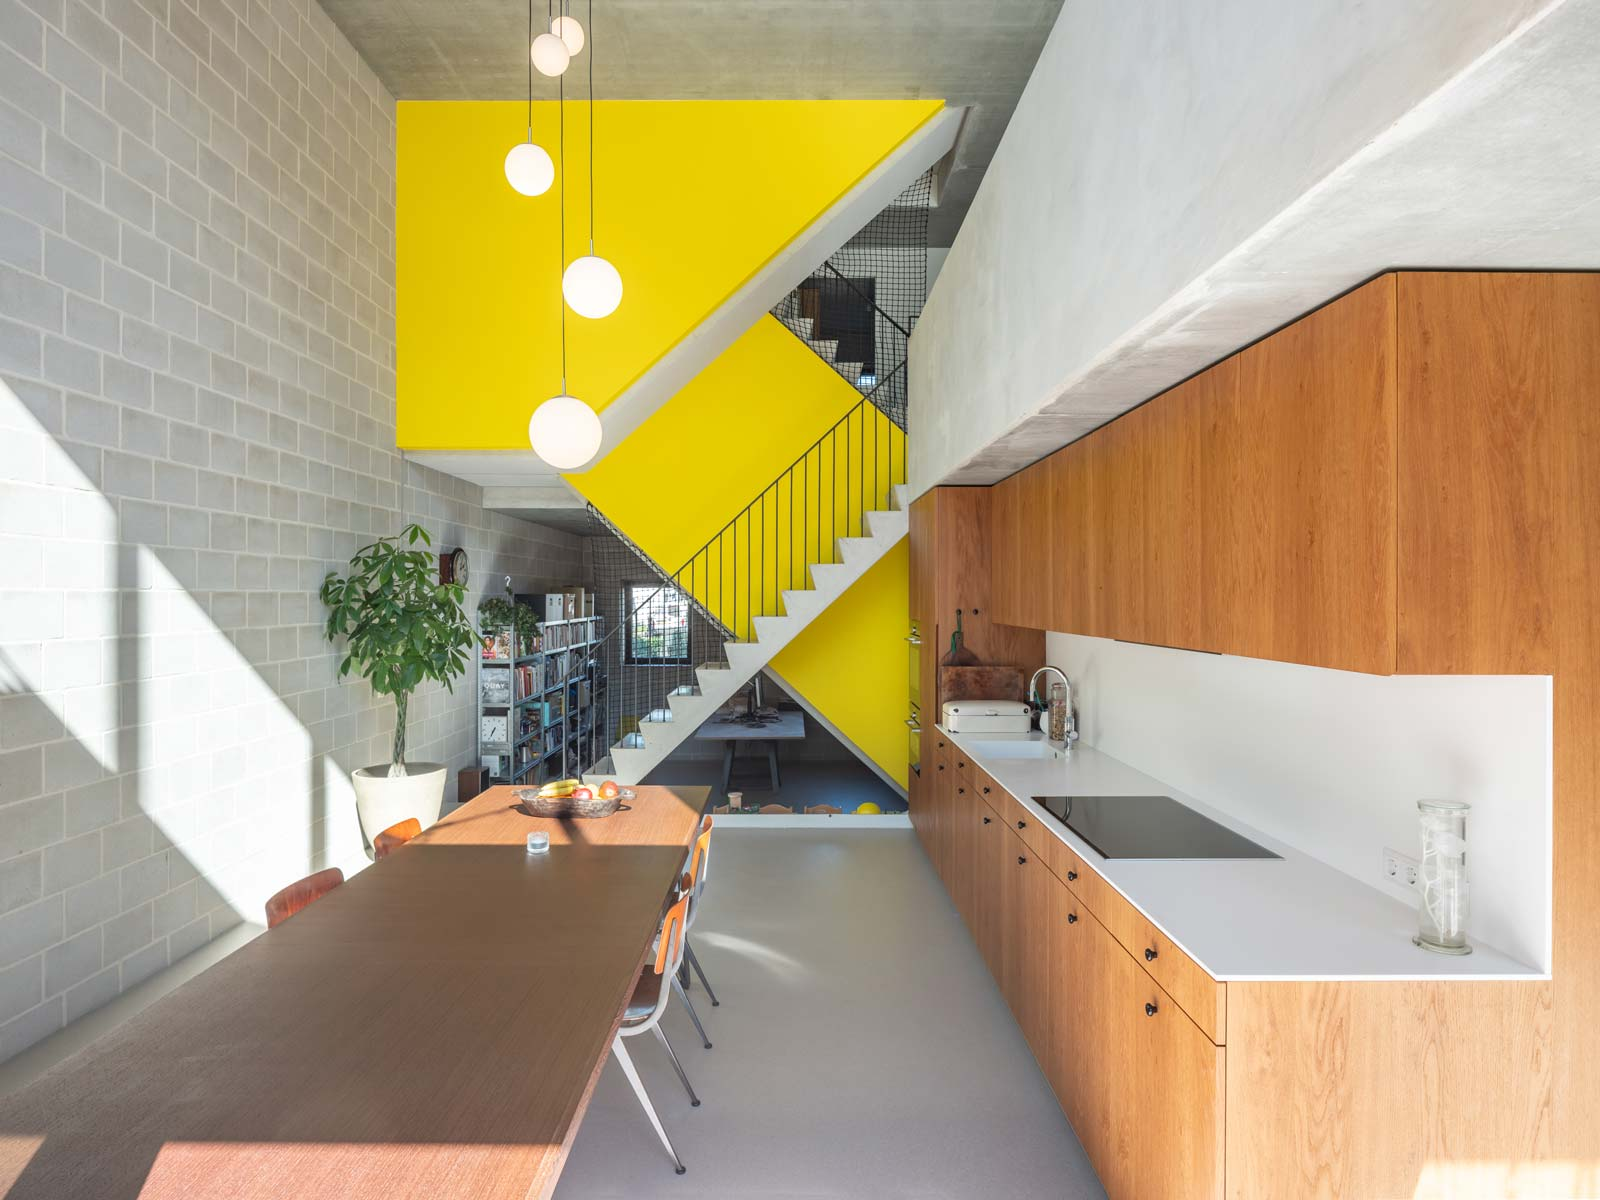 three generation house by BETA photo interior kitchen with yellow staircase by Ossip